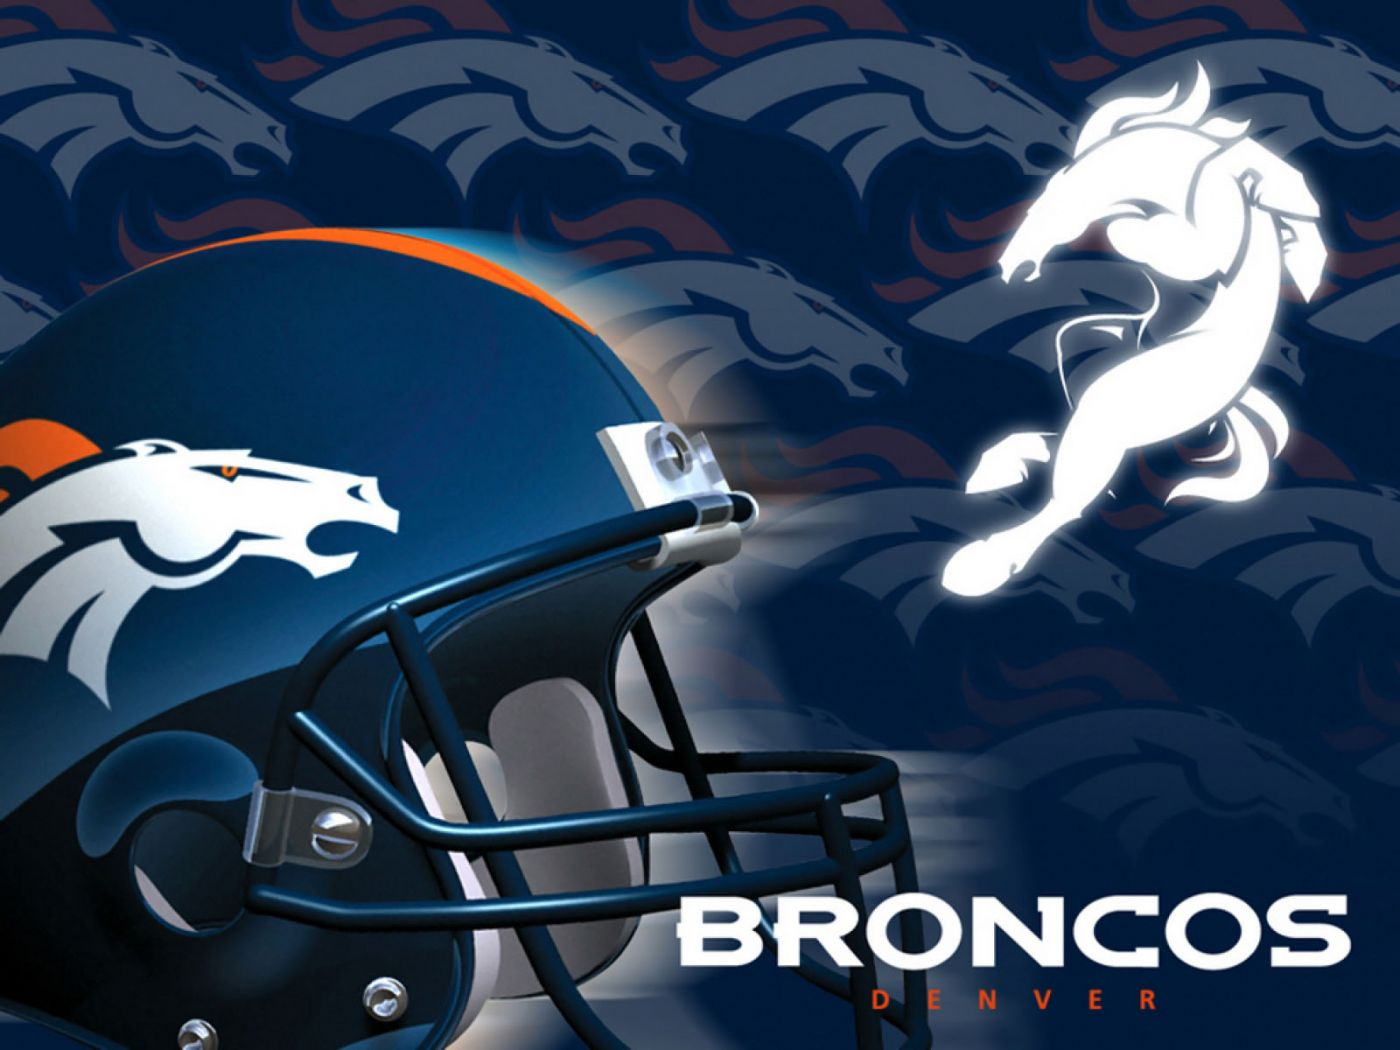 Broncos-wallpaper-wp4601379-1